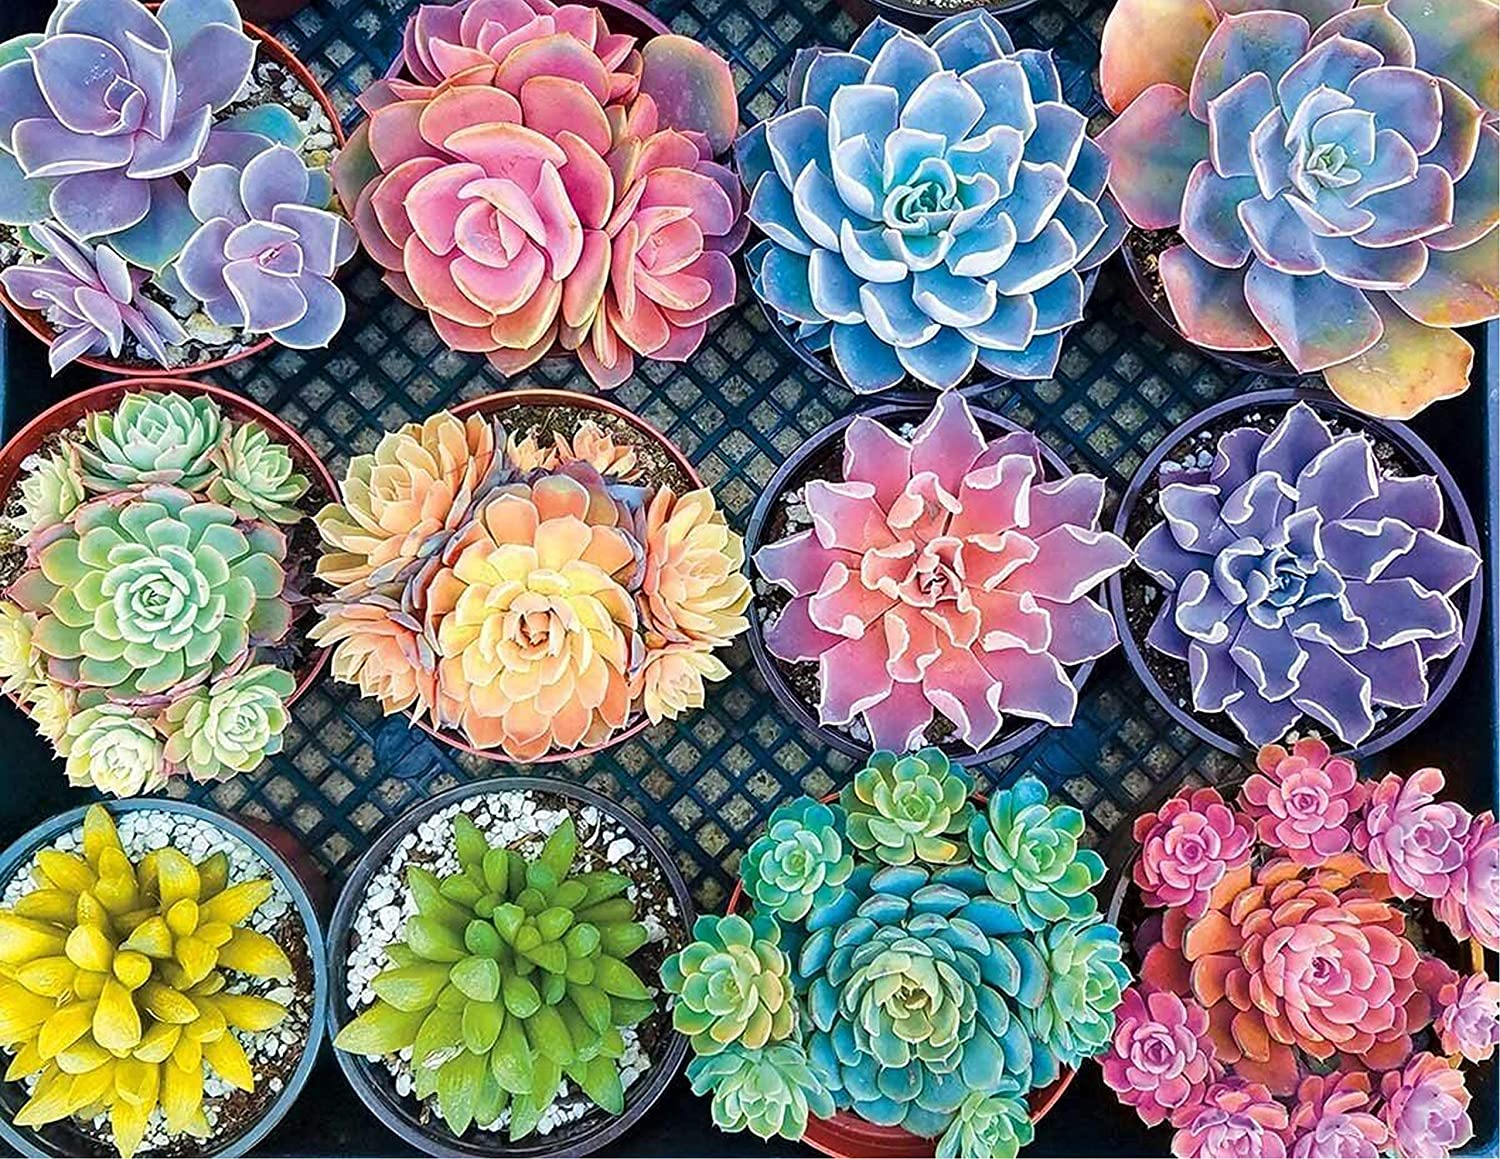 Colorful Succulents DIY 5D Diamond Painting by Number Kits for Adults Kids, Painting Cross Stitch Full Drill Crystal Rhinestone Embroidery Pictures Arts Craft for Home Wall Decors Christmas Gifts